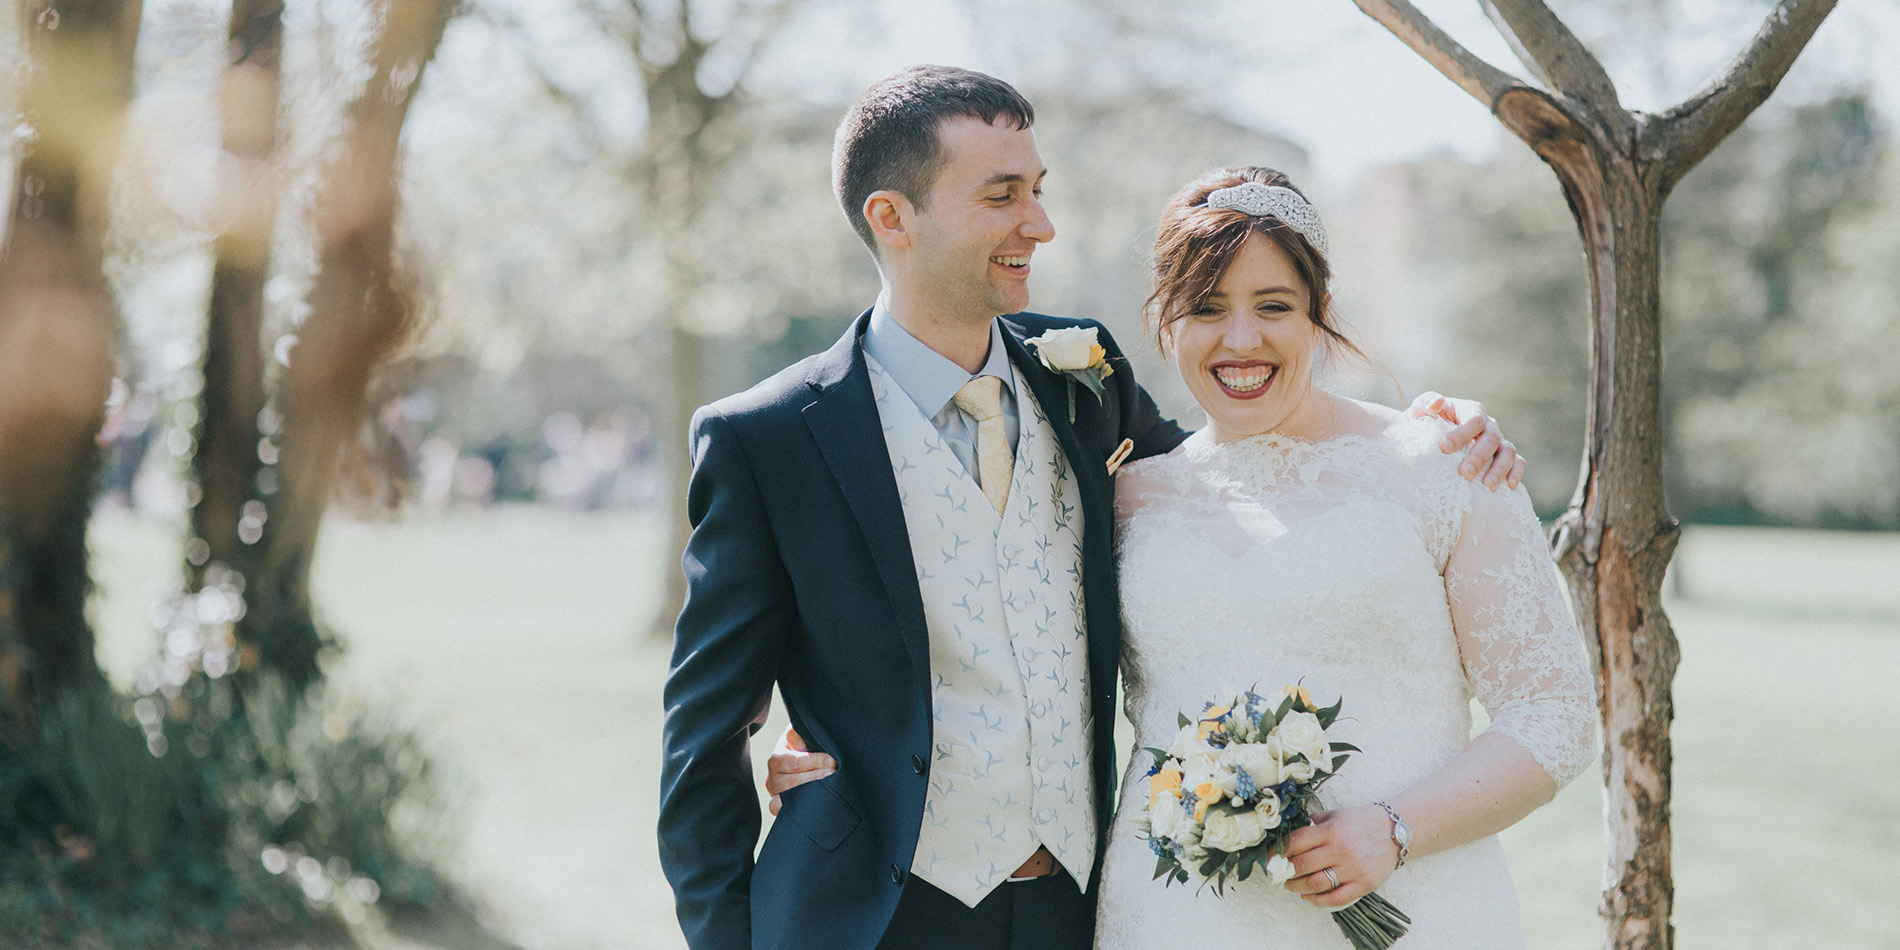 Ruth and Steven share their wedding day at Morden Hall one of the finest wedding venues in London